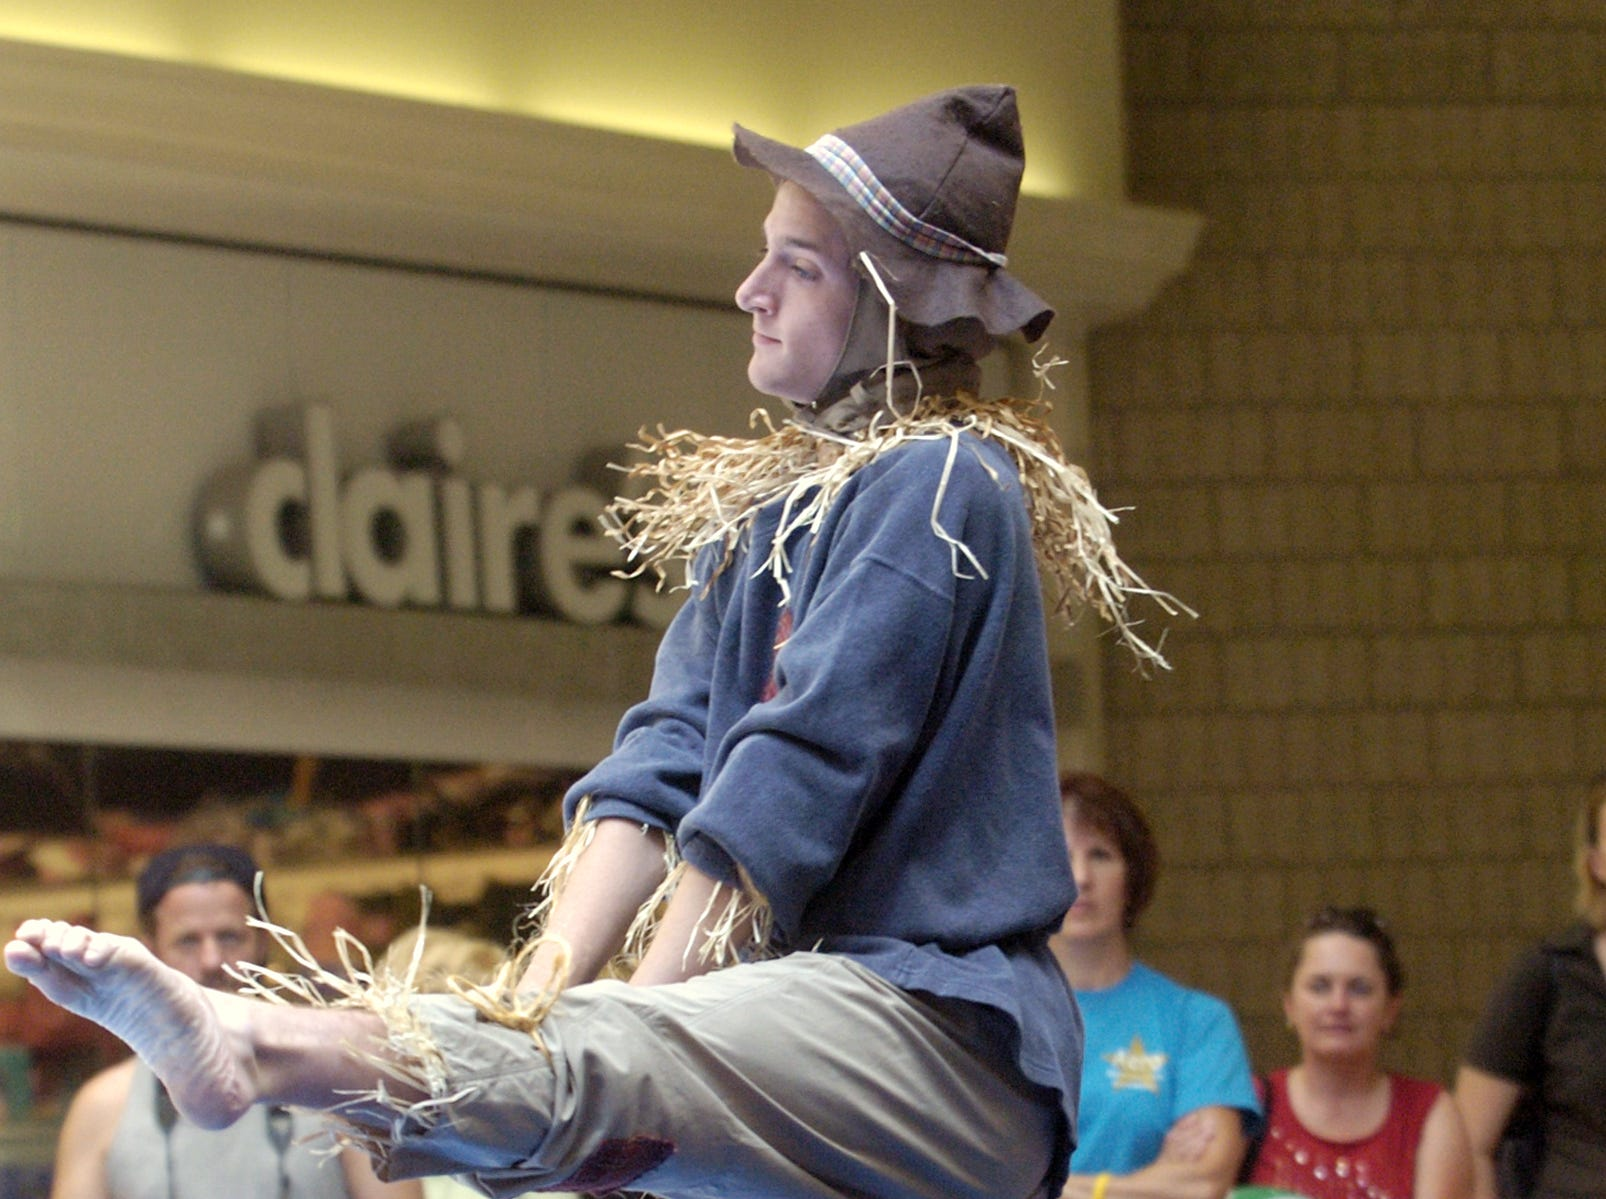 Tony Mitchell, 17, a senior at Chenango Valley High School, performs as the scarecrow during a Lighthouse Productions exhbibition August 5 at the Oakdale Mall.